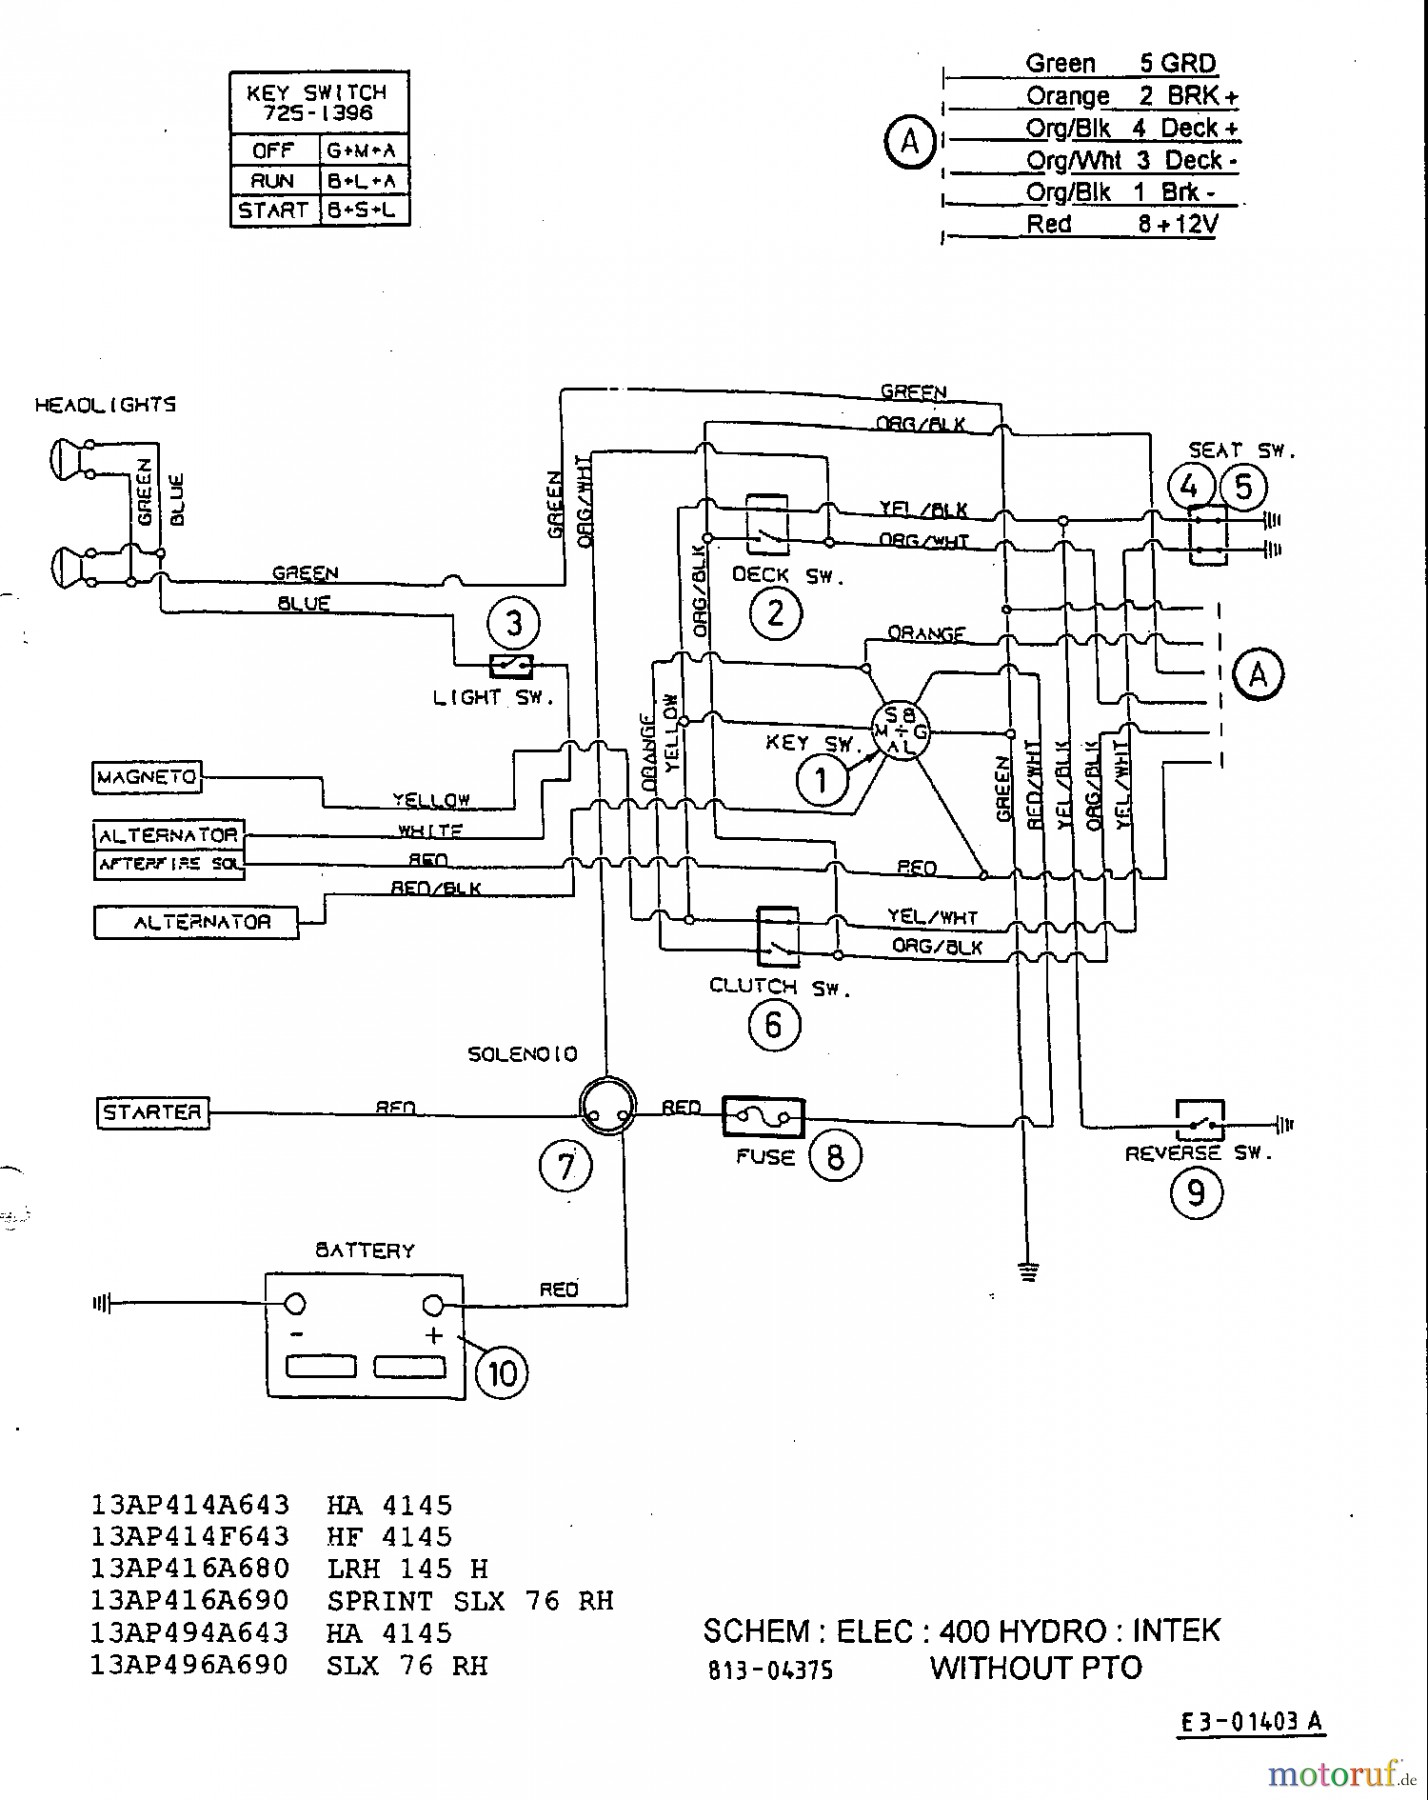 diagram of lawn mower engine mtd riding mower wiring diagram with rh detoxicrecenze com MTD Carburetor Diagram MTD Snowblower Throttle Linkage Diagram